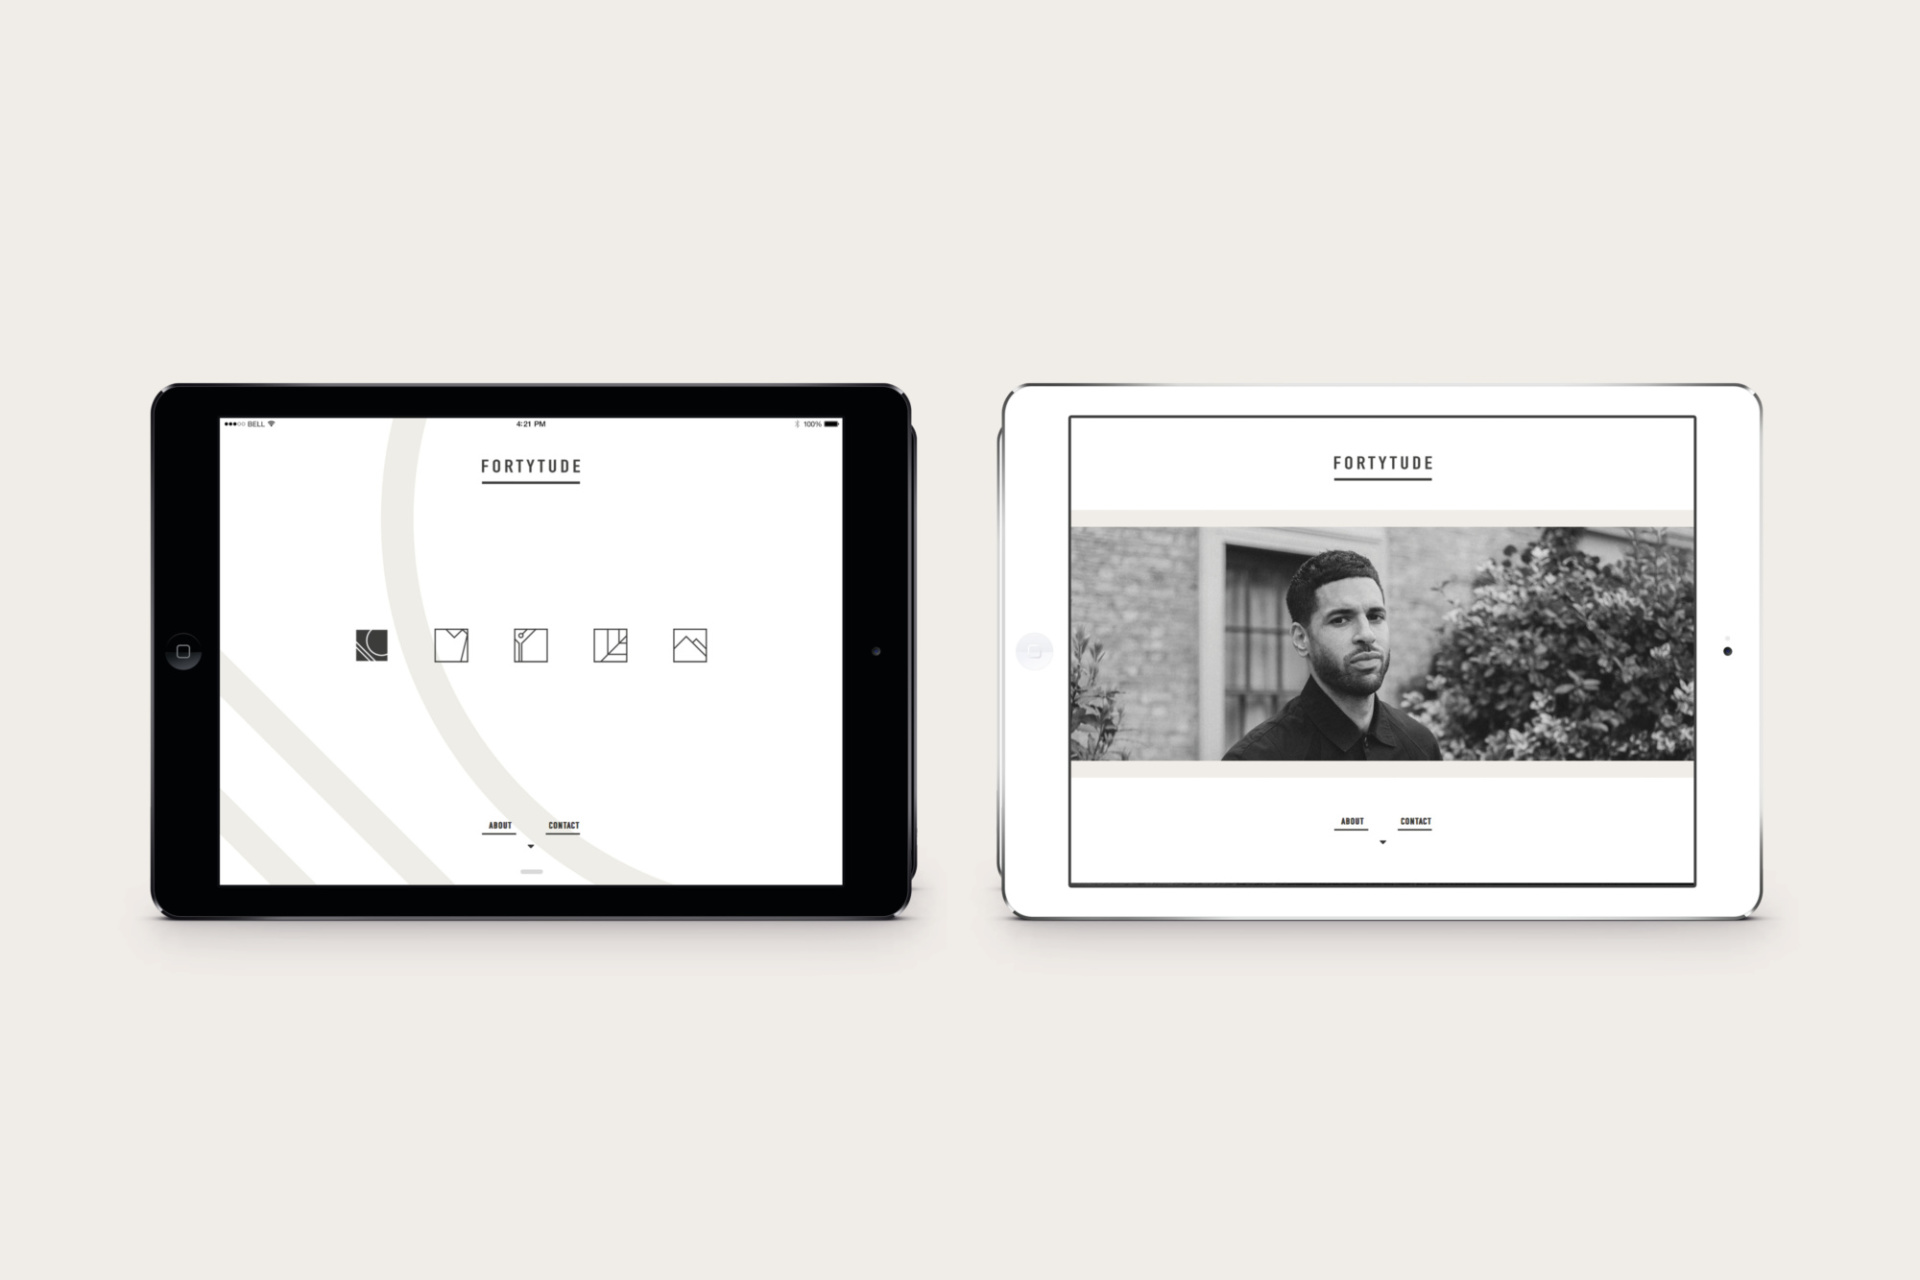 Fortytude website displayed on an iPad. Monochrome design, with simple line graphics. Graphic design produced by Barefaced Studios, design agency based in Islington, North London.